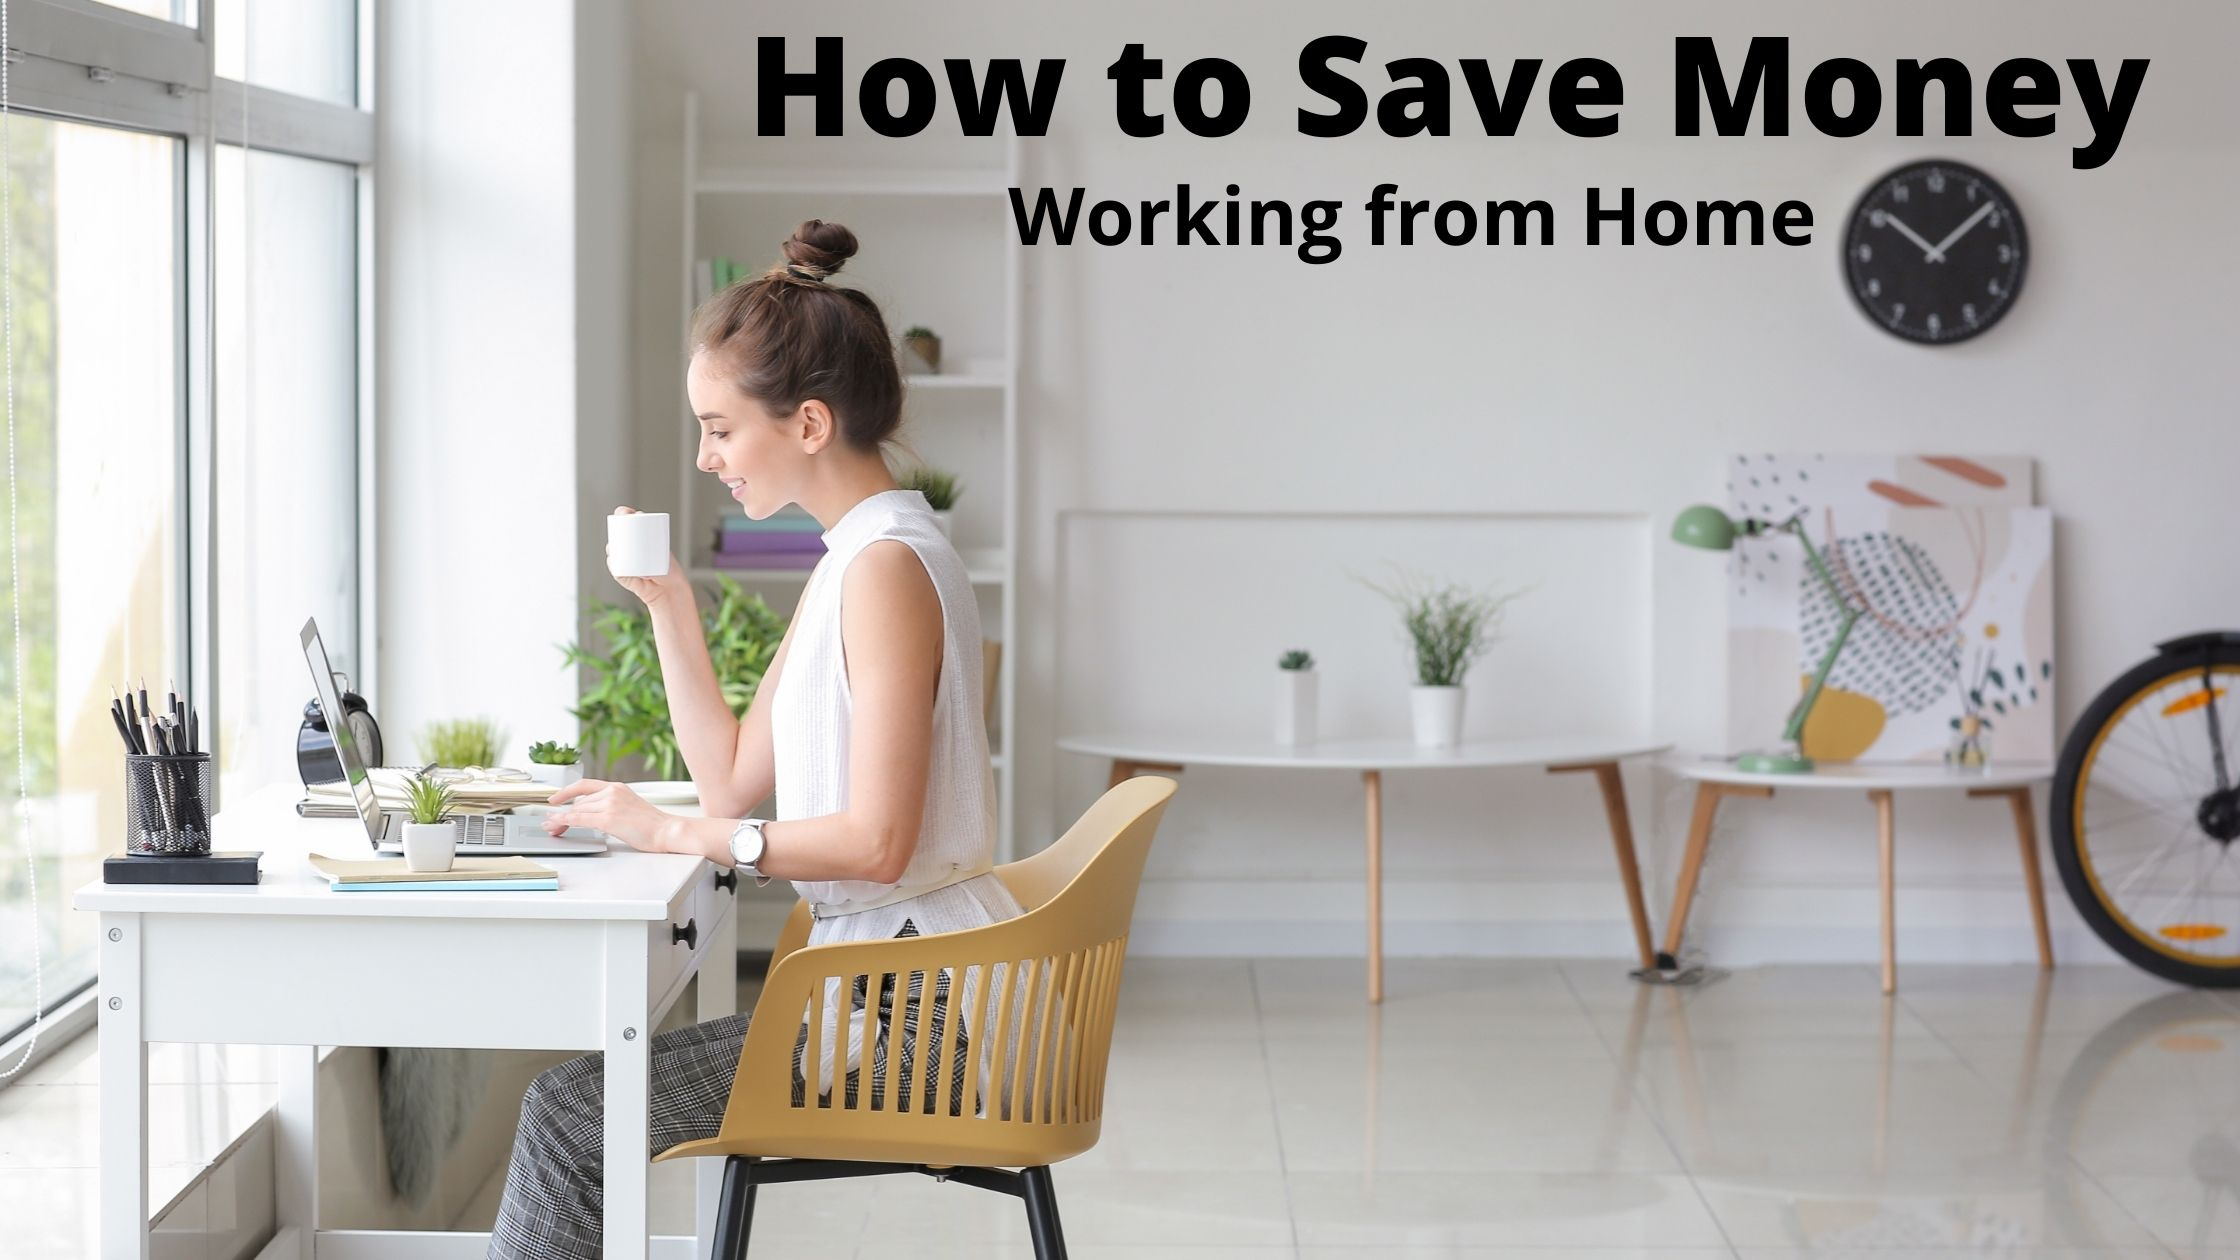 How to Save Money Working from Home